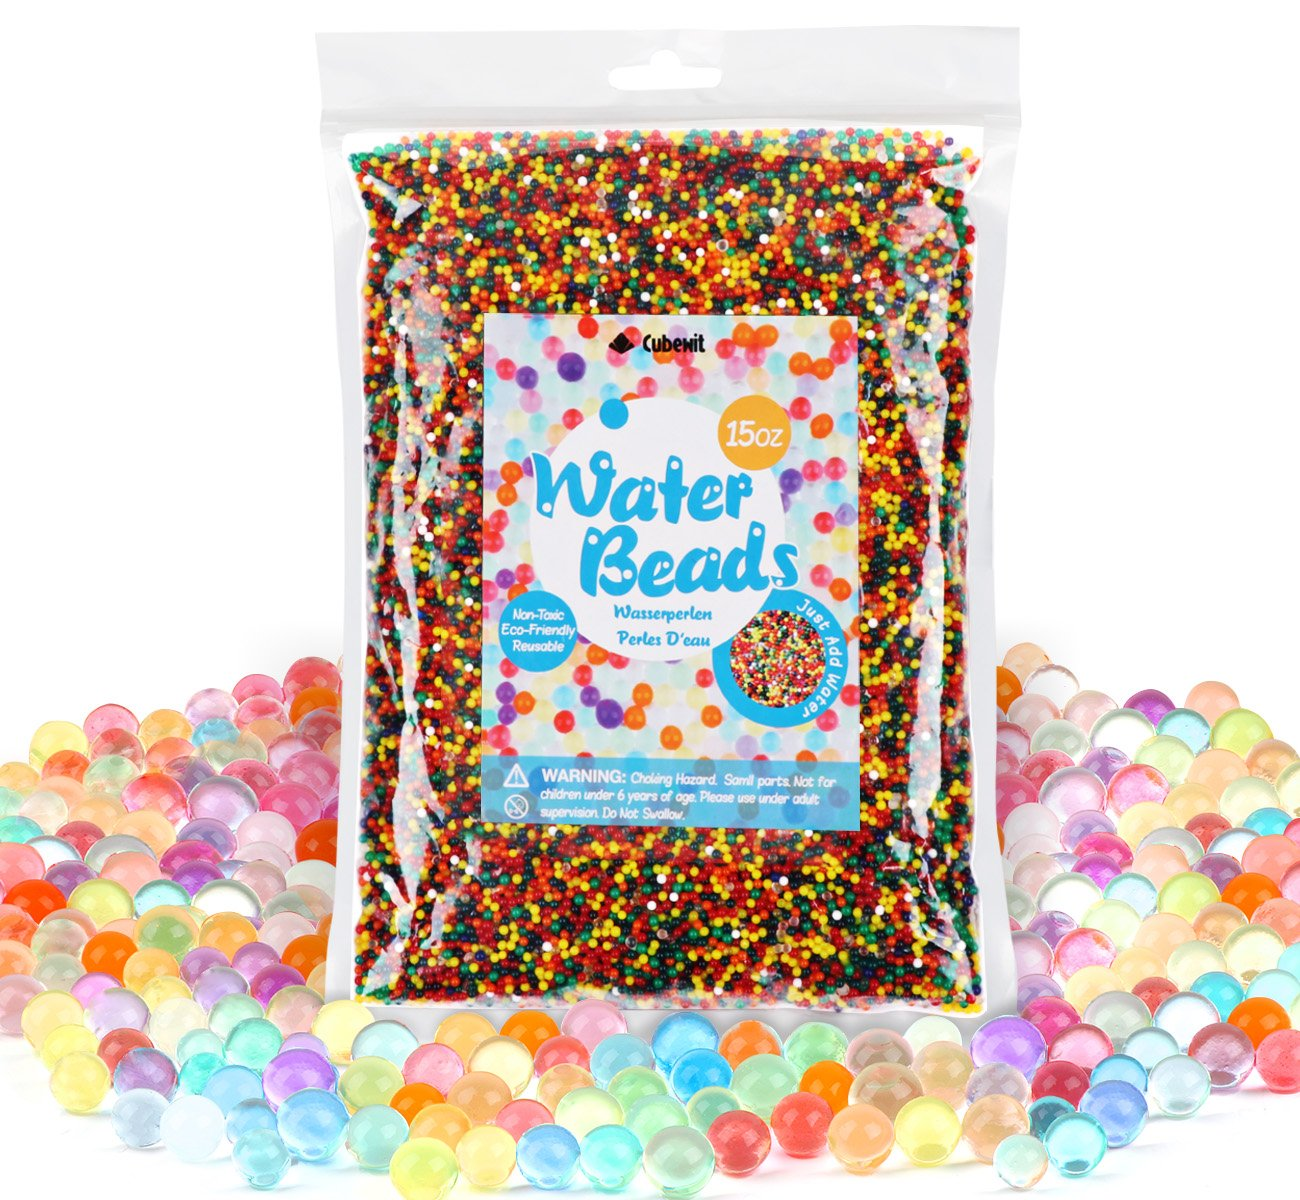 400g Water Beads Gel Beads (50,000pcs) Crystal Water Gel Jelly Crystal Beads Mixed Colors Rainbow Cubewit Water Beads for Orbeez Spa, Toys, Wedding Decoration Aqua perlen Vases etc